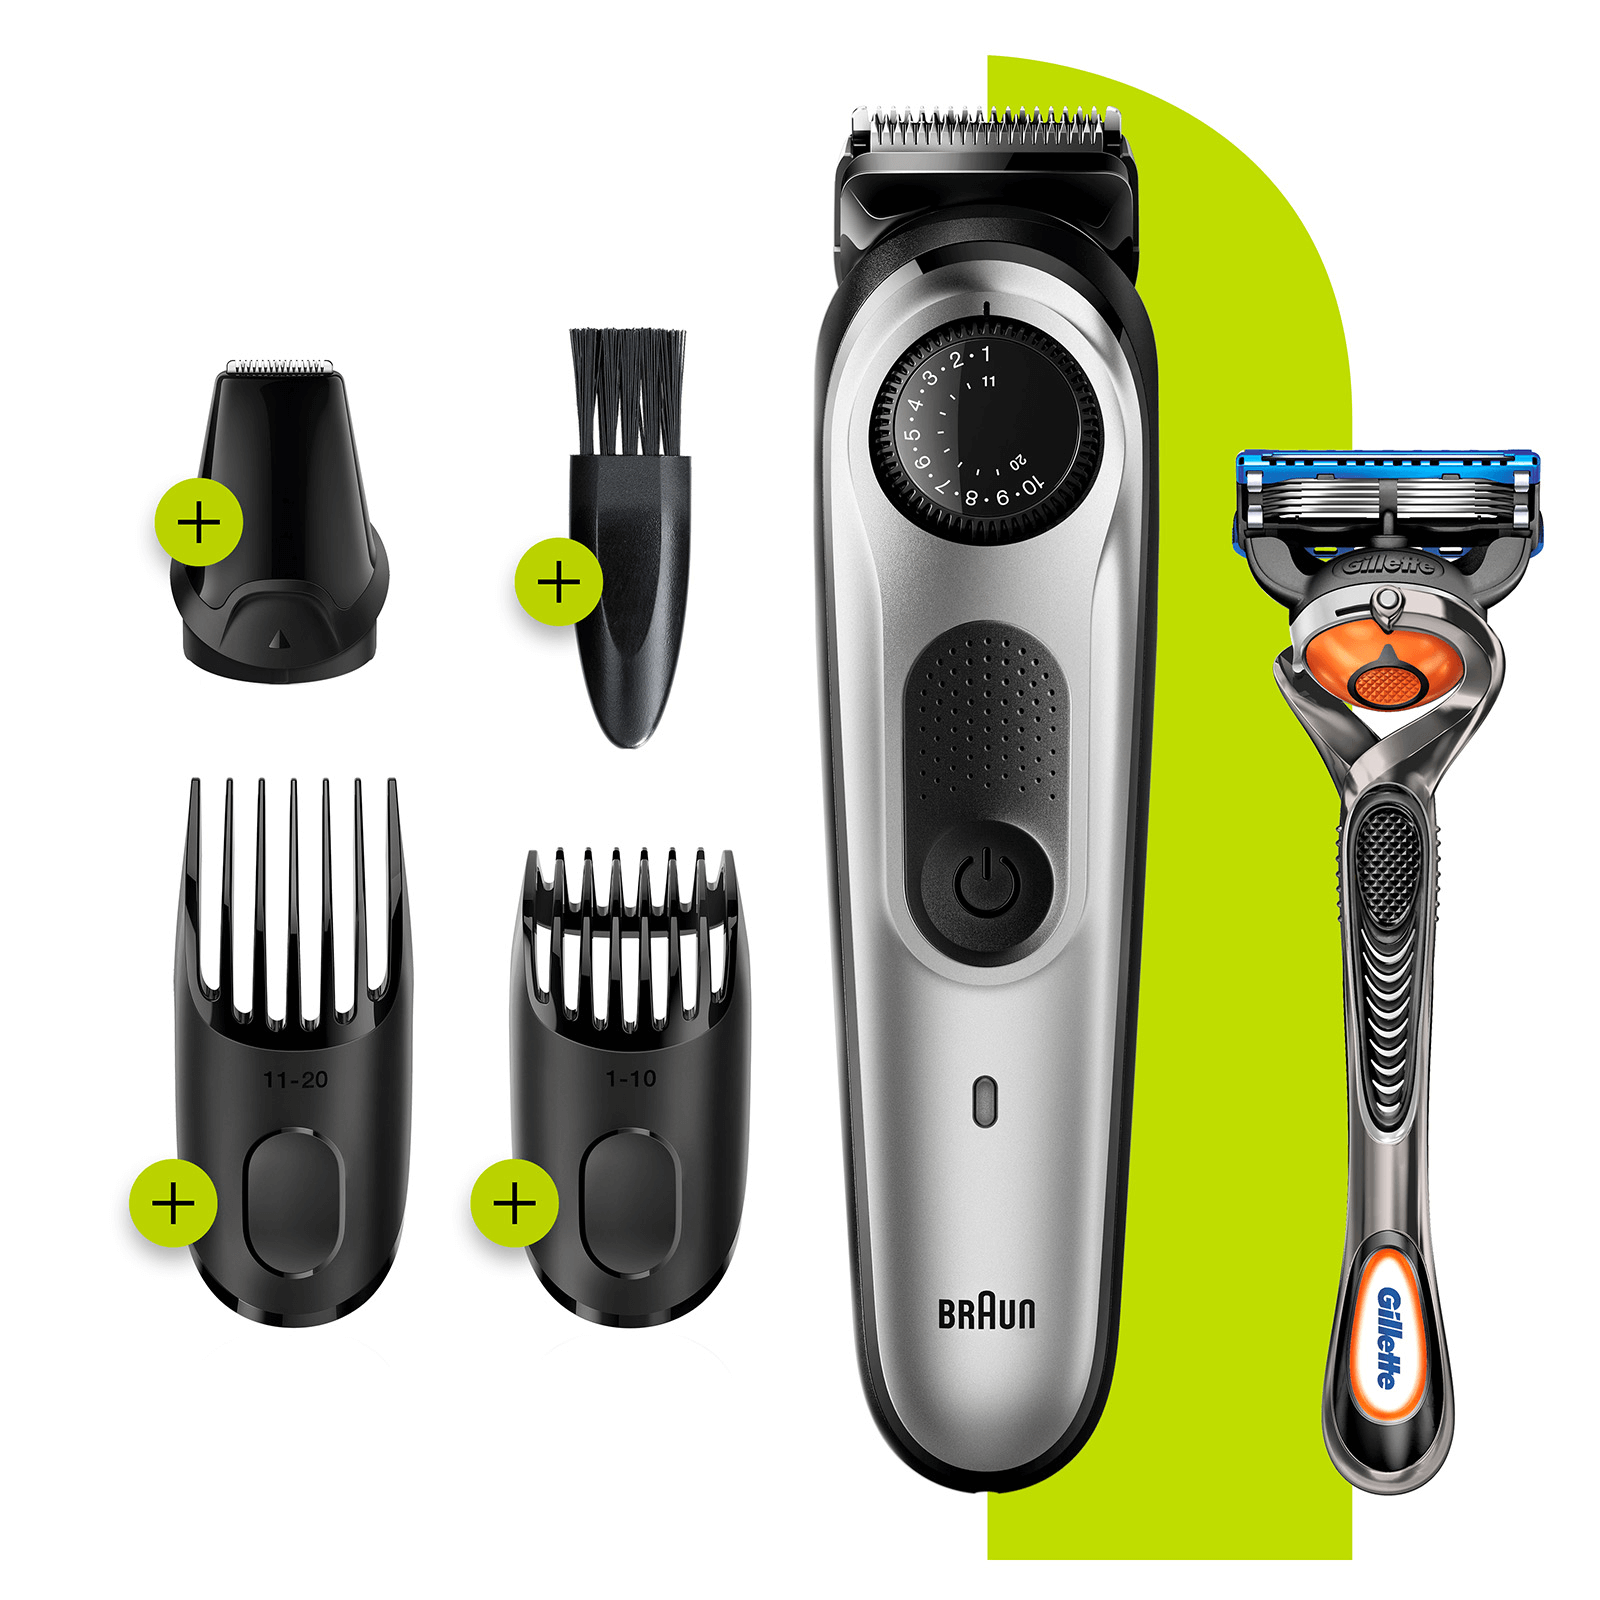 Beard Trimmer with 3 attachments and Gillette Razor